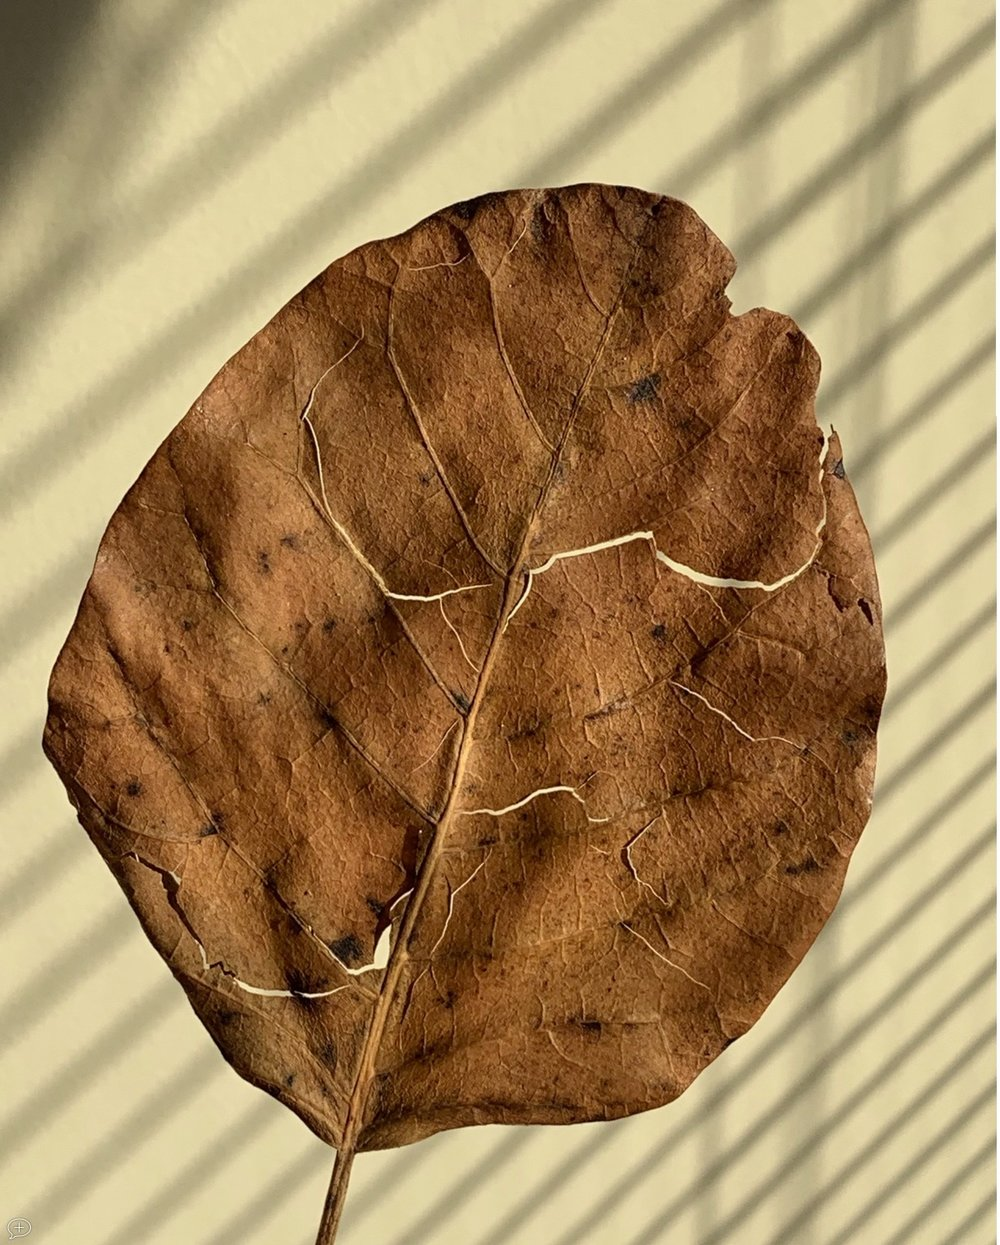 "4 . A Winter Leaf . iPhone XS, 2018. Saratoga Springs, NY.(Canvas Photo, 20"" x 16""). I'm particularly fond of photographing nature up close, and this leaf blew into my garage last November, so I held it up against a wall, with the shadow of a shade behind it.  ©2018 Sean Walmsley"